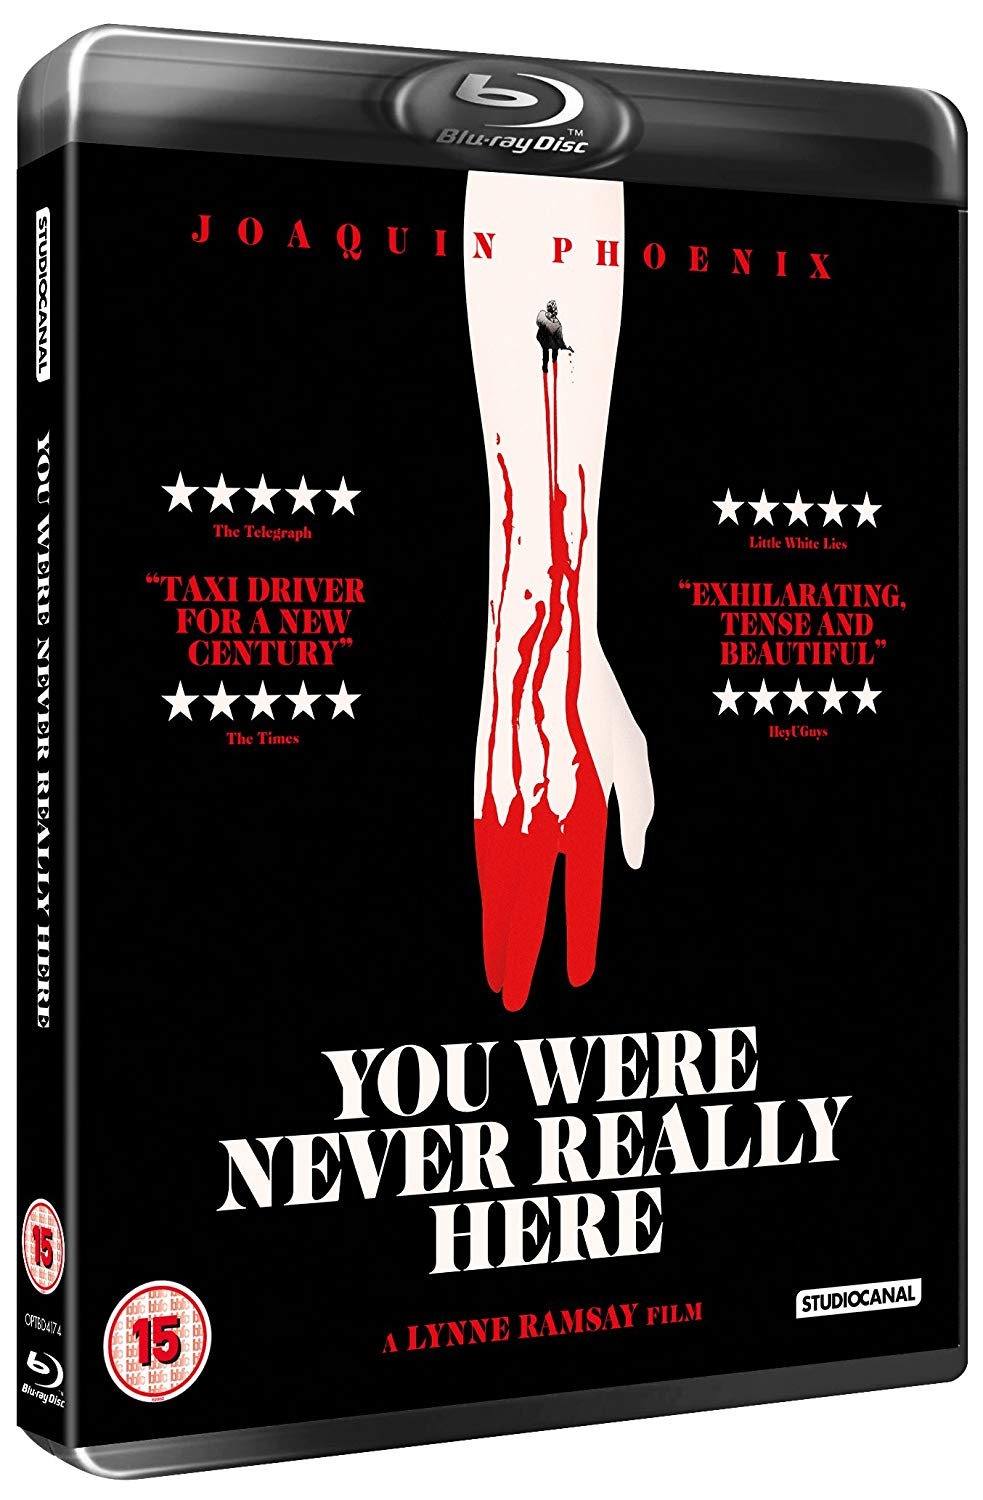 you were never really here blu-ray box